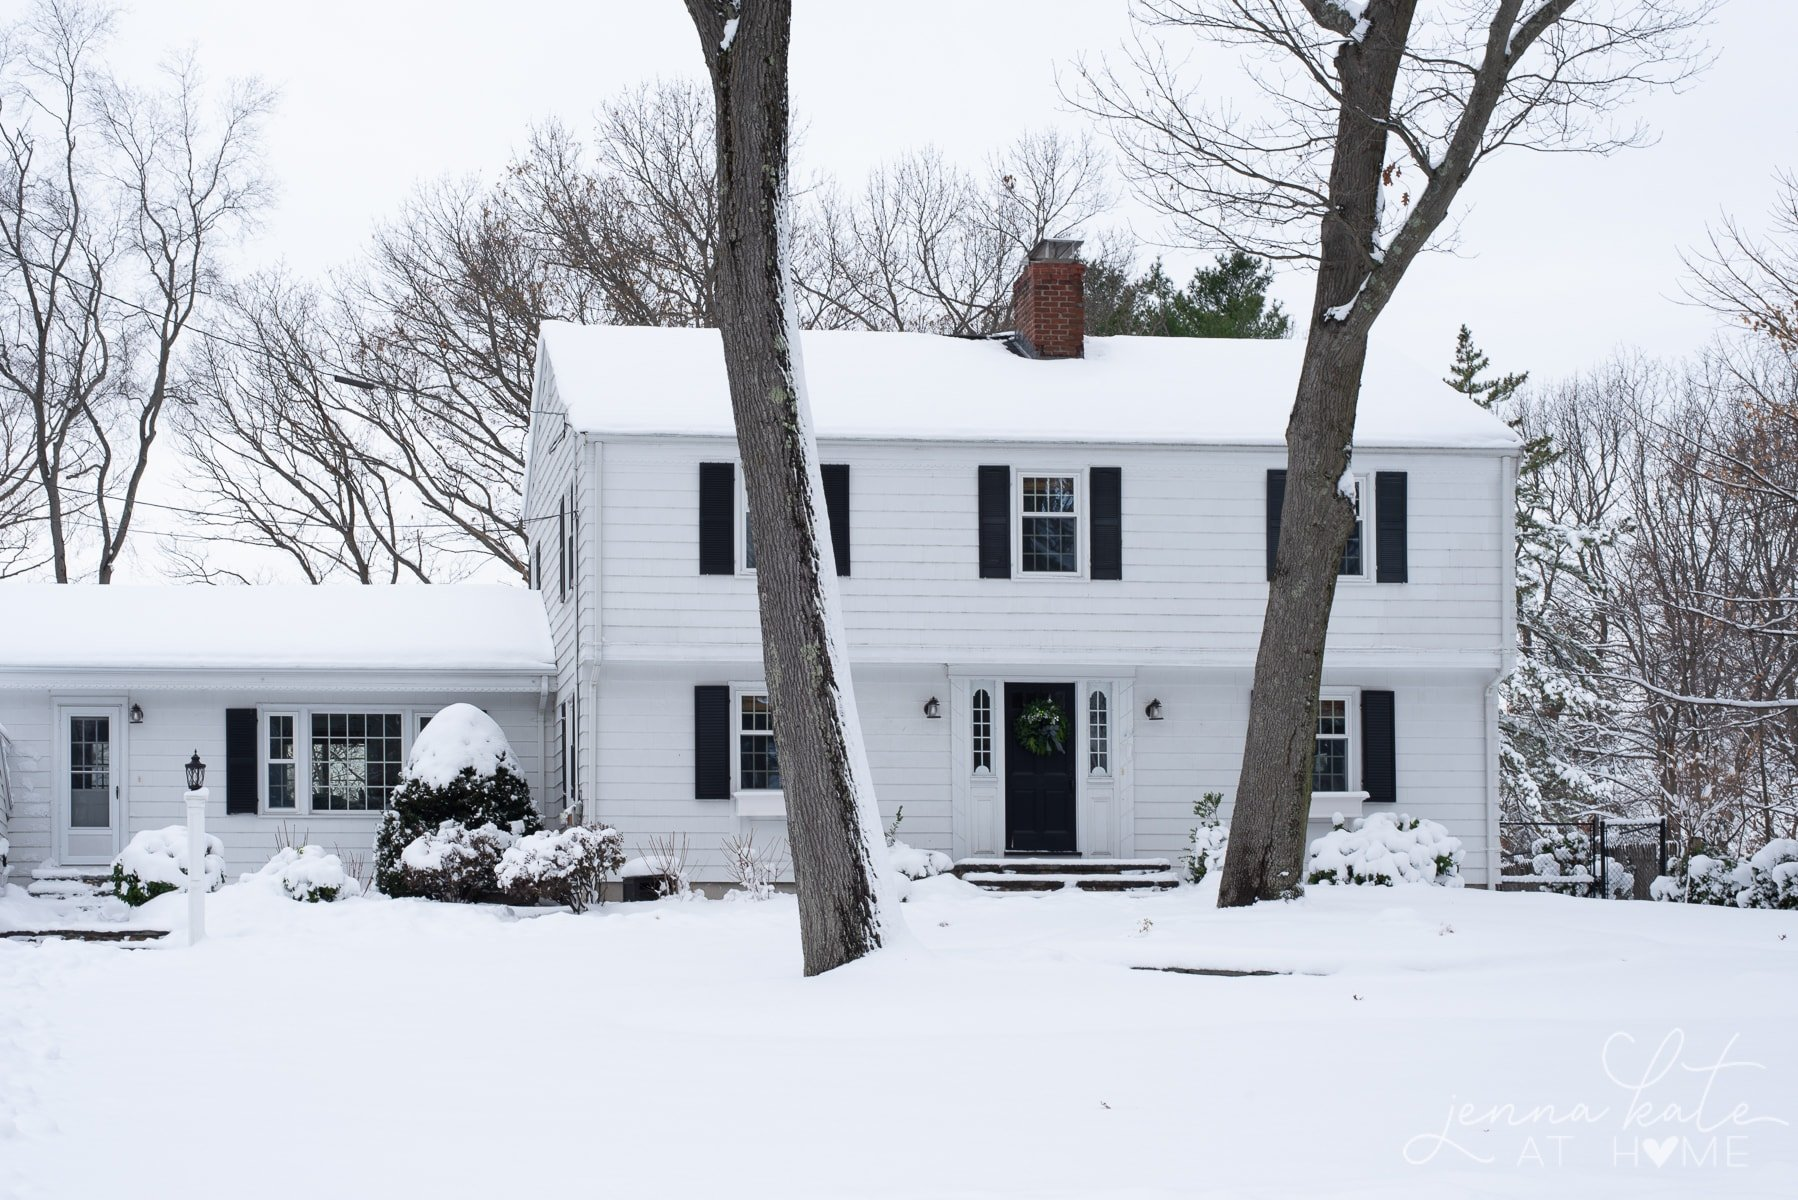 White Colonial house covered in snow